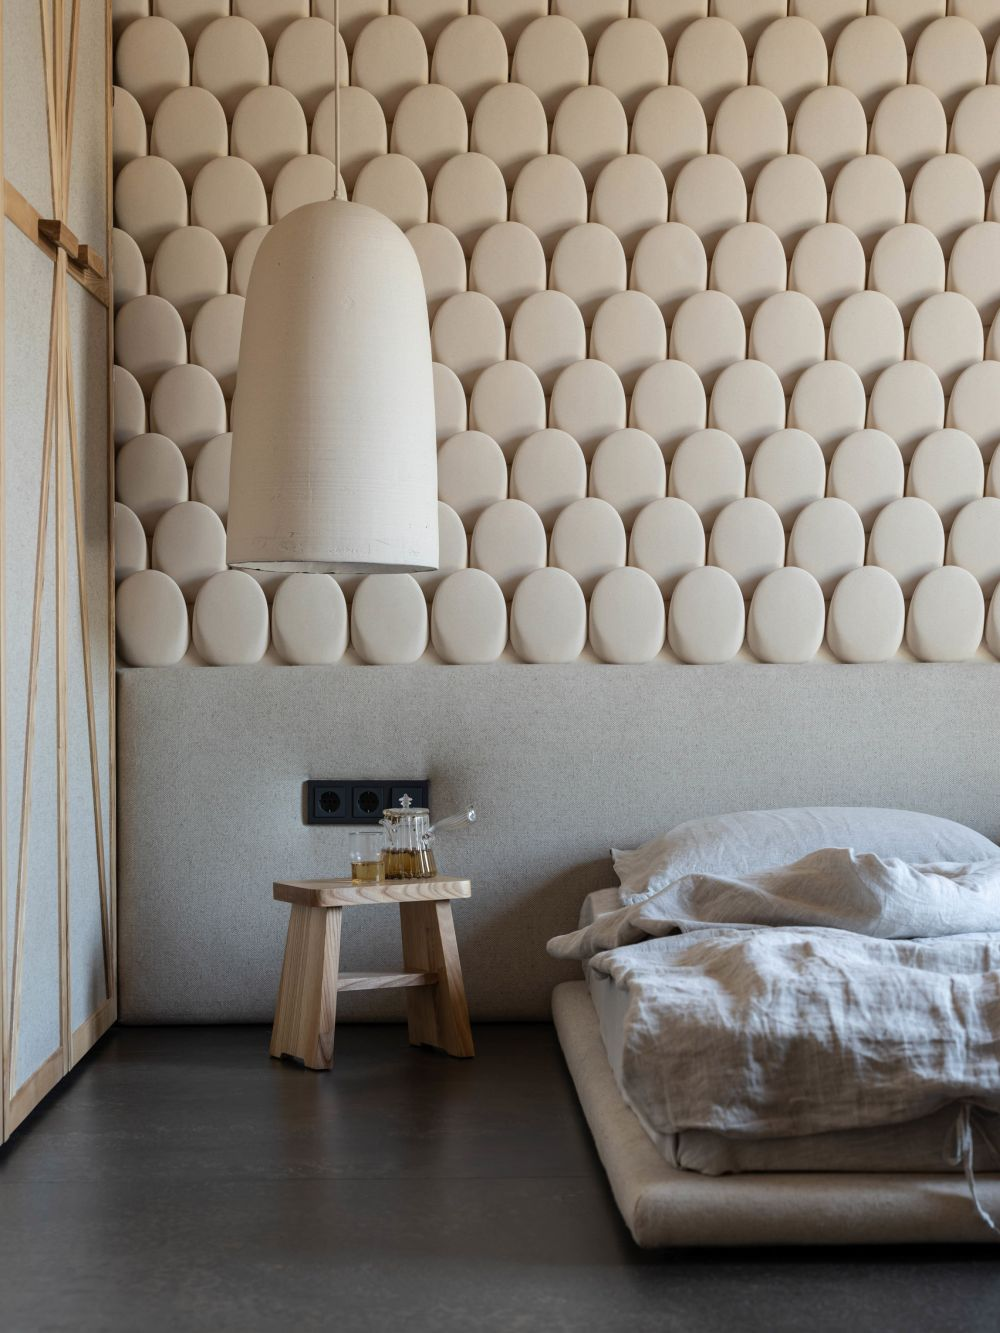 The master bedroom has a magnificent accent wall decorated with ceramic tiles